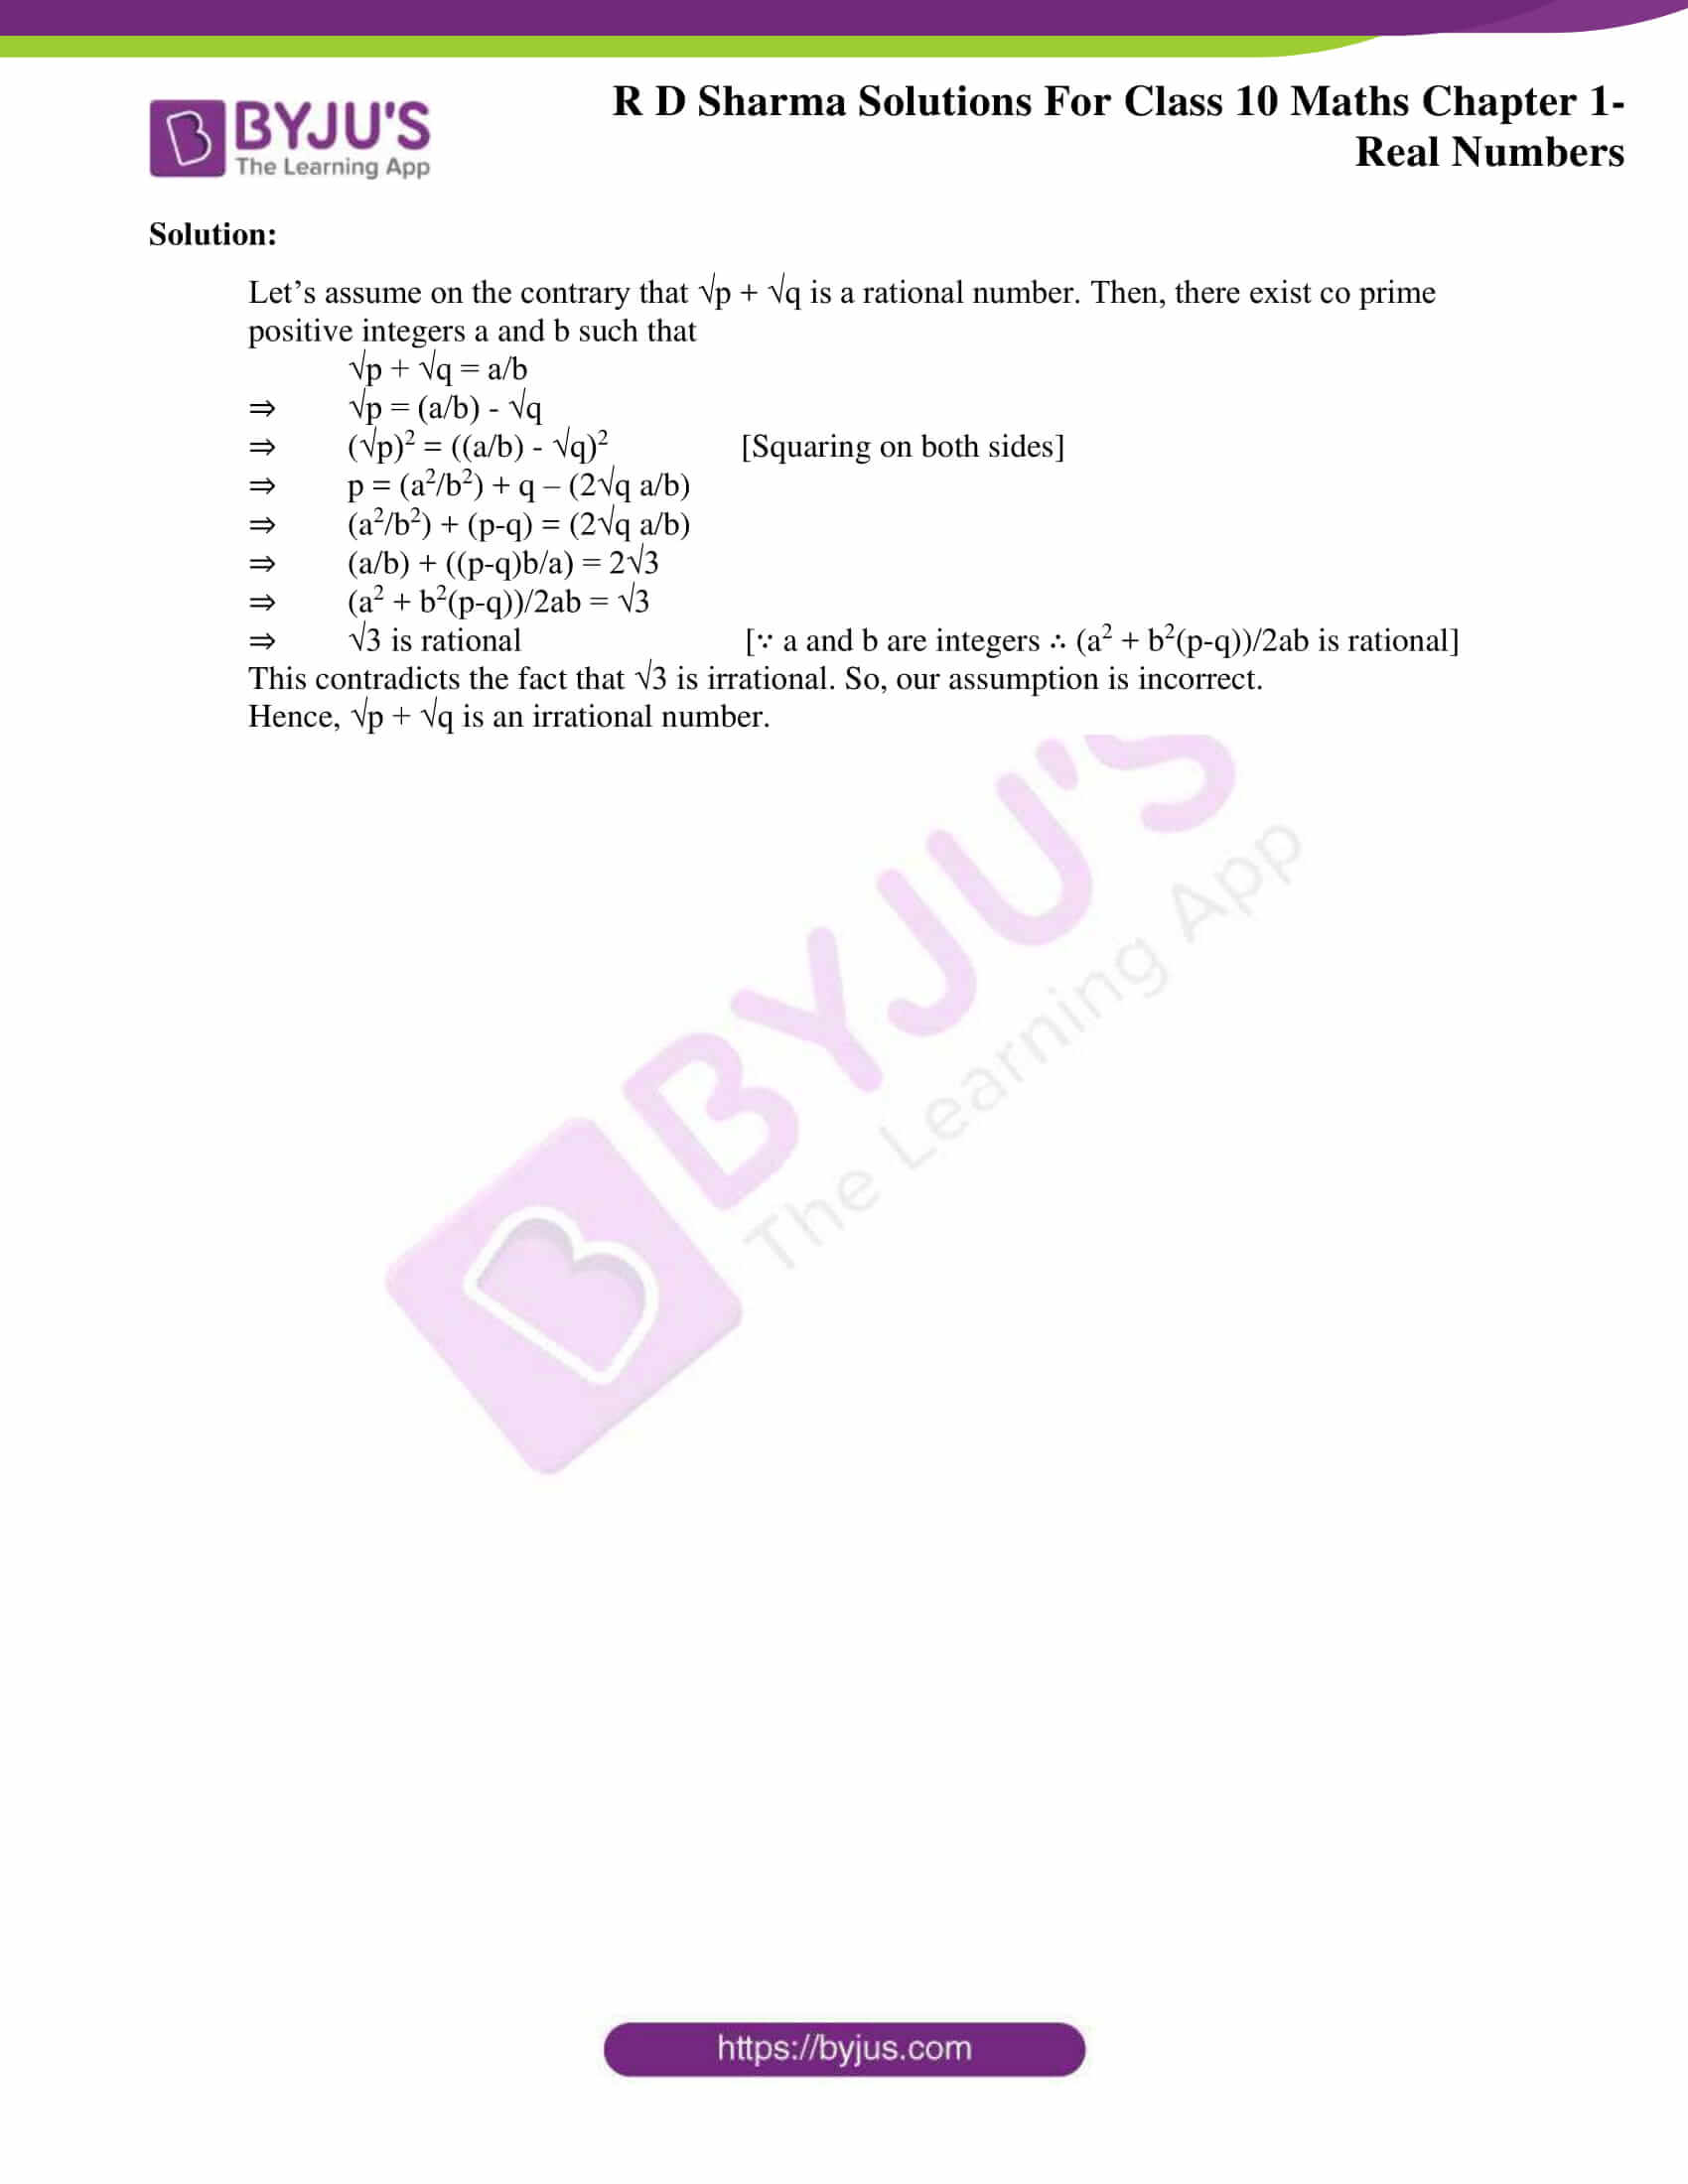 rd sharma solutions for class 10 chapter 1 ex 1.5